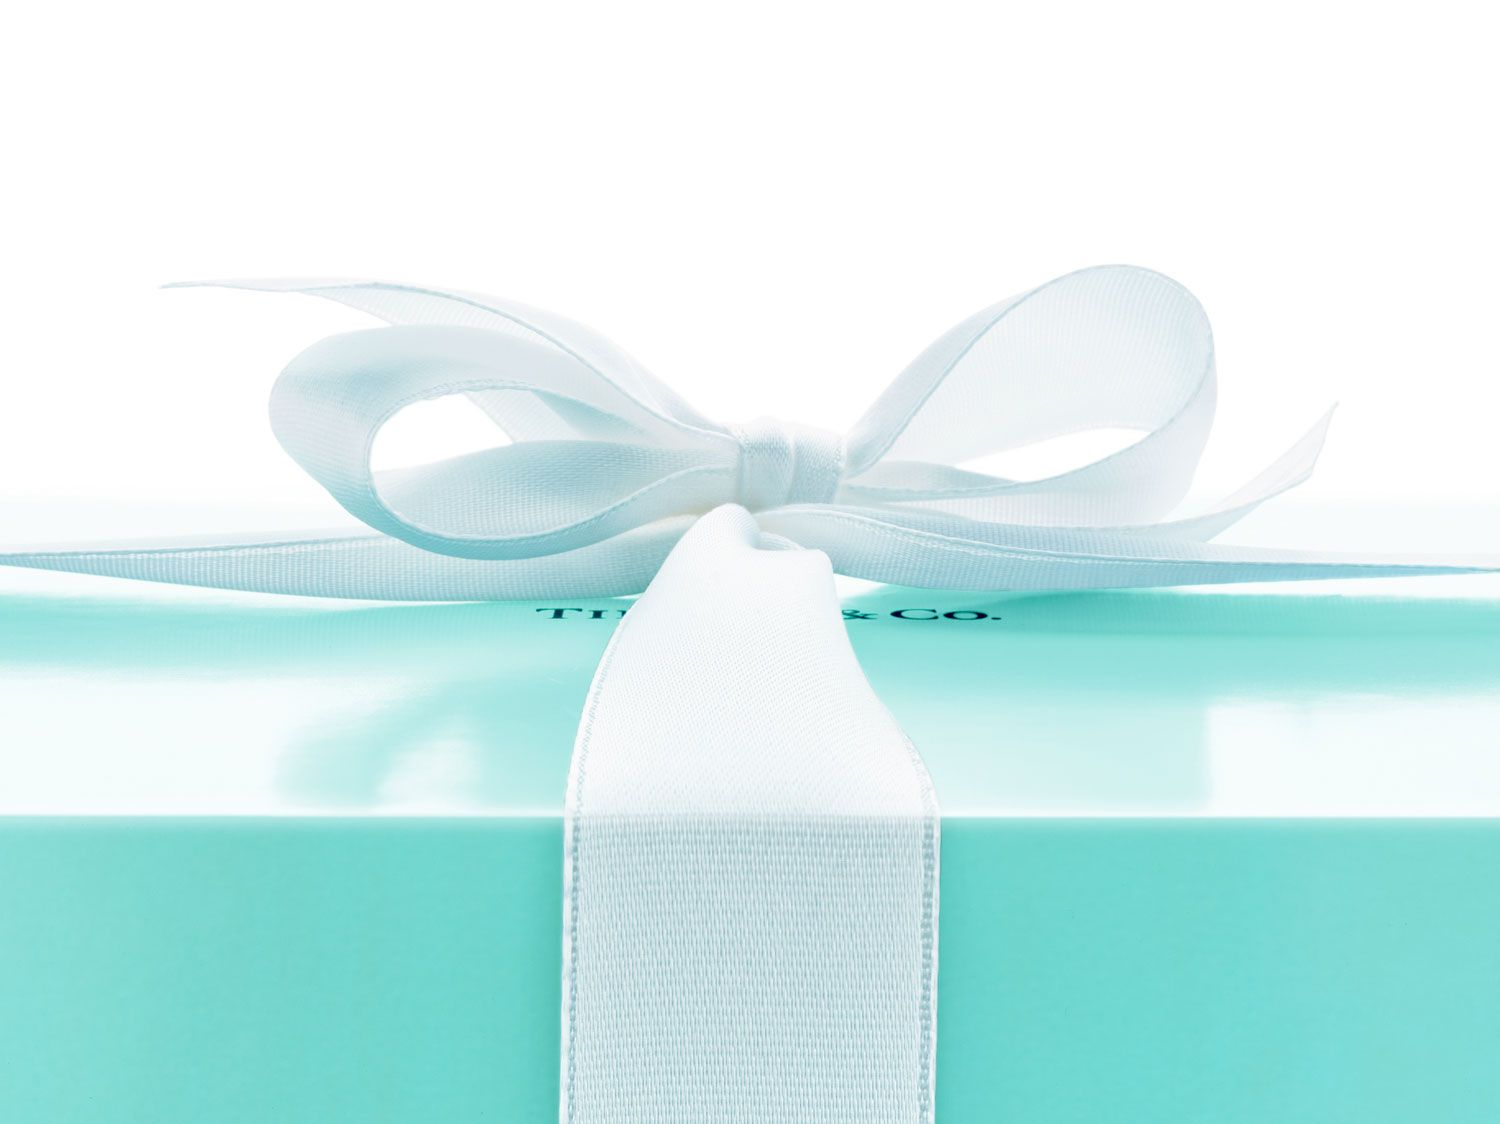 5b7b19a9a 15 Best Tiffany's Gifts - Classic Tiffany Presents to Give That Tiffany Box